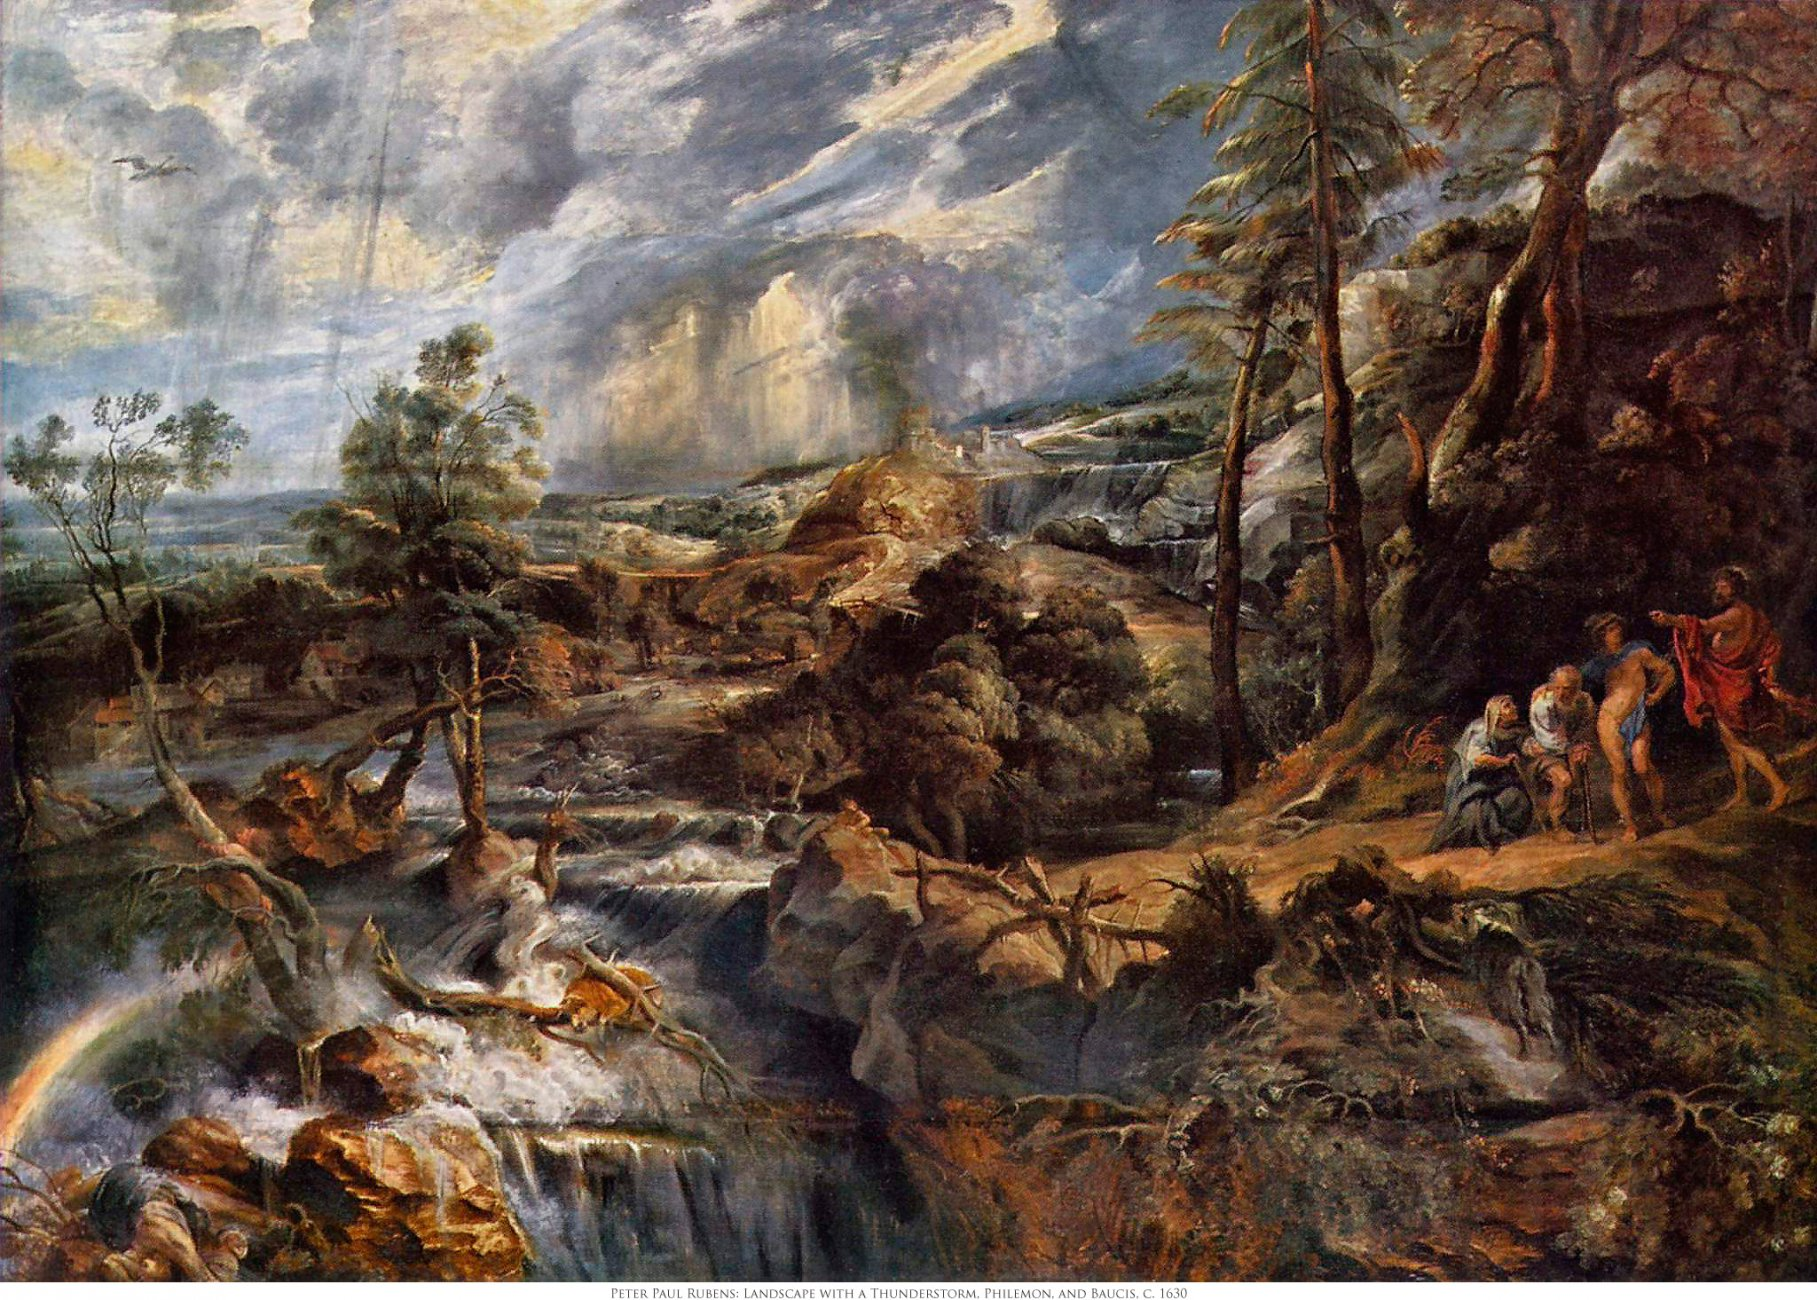 Peter_Paul_Rubens-Landscape_with_Thunderstorm-1630-057-edited_DC_lvl11.jpg